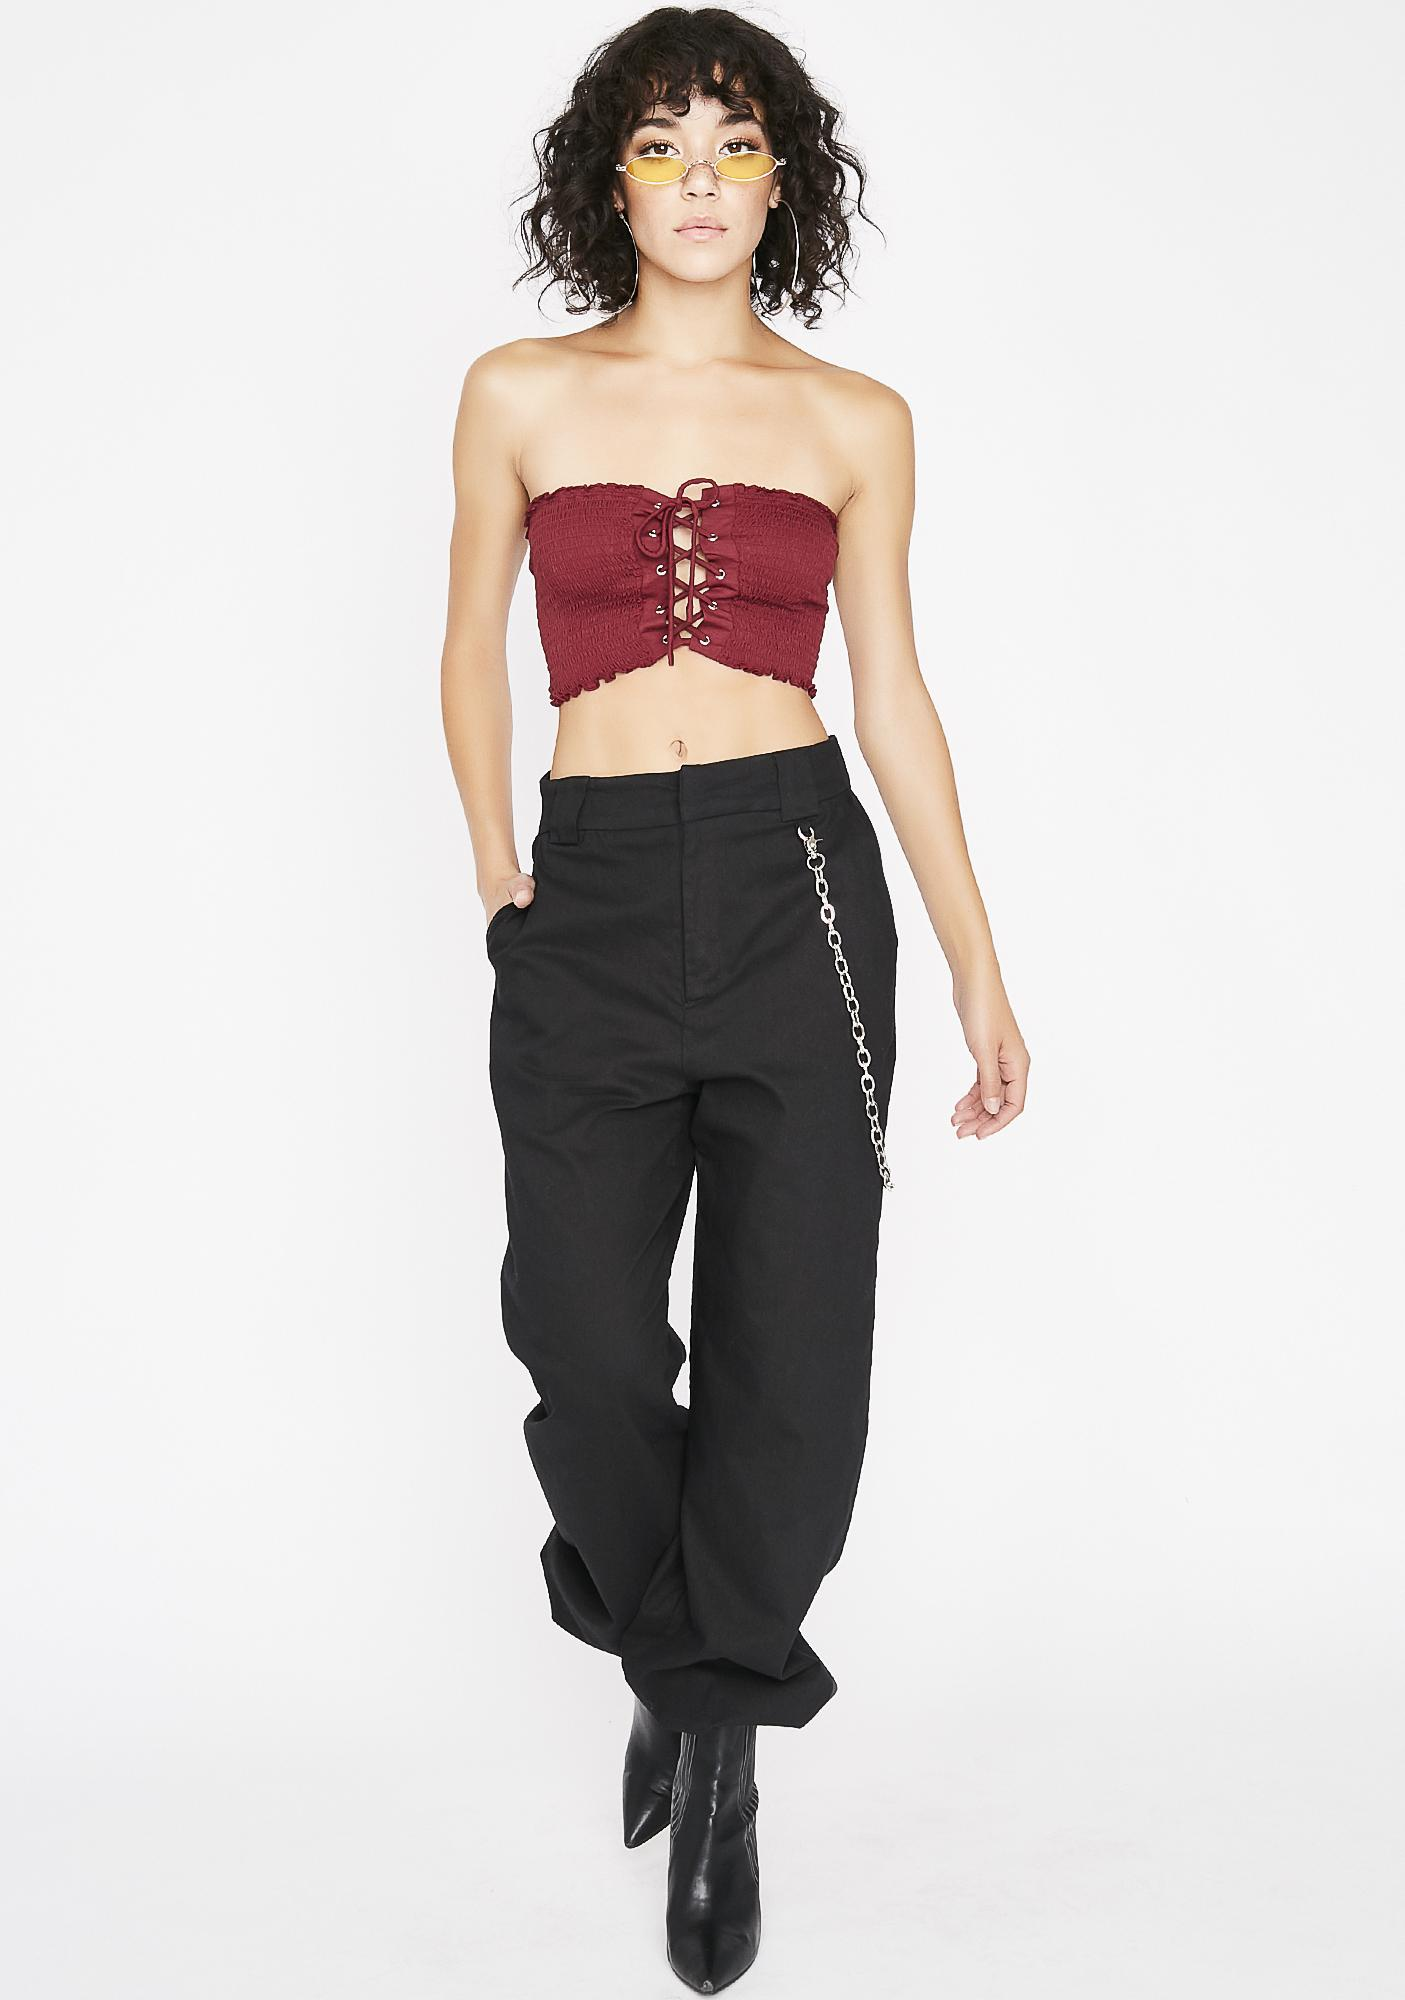 Berry Neva Ending Lace Up Top